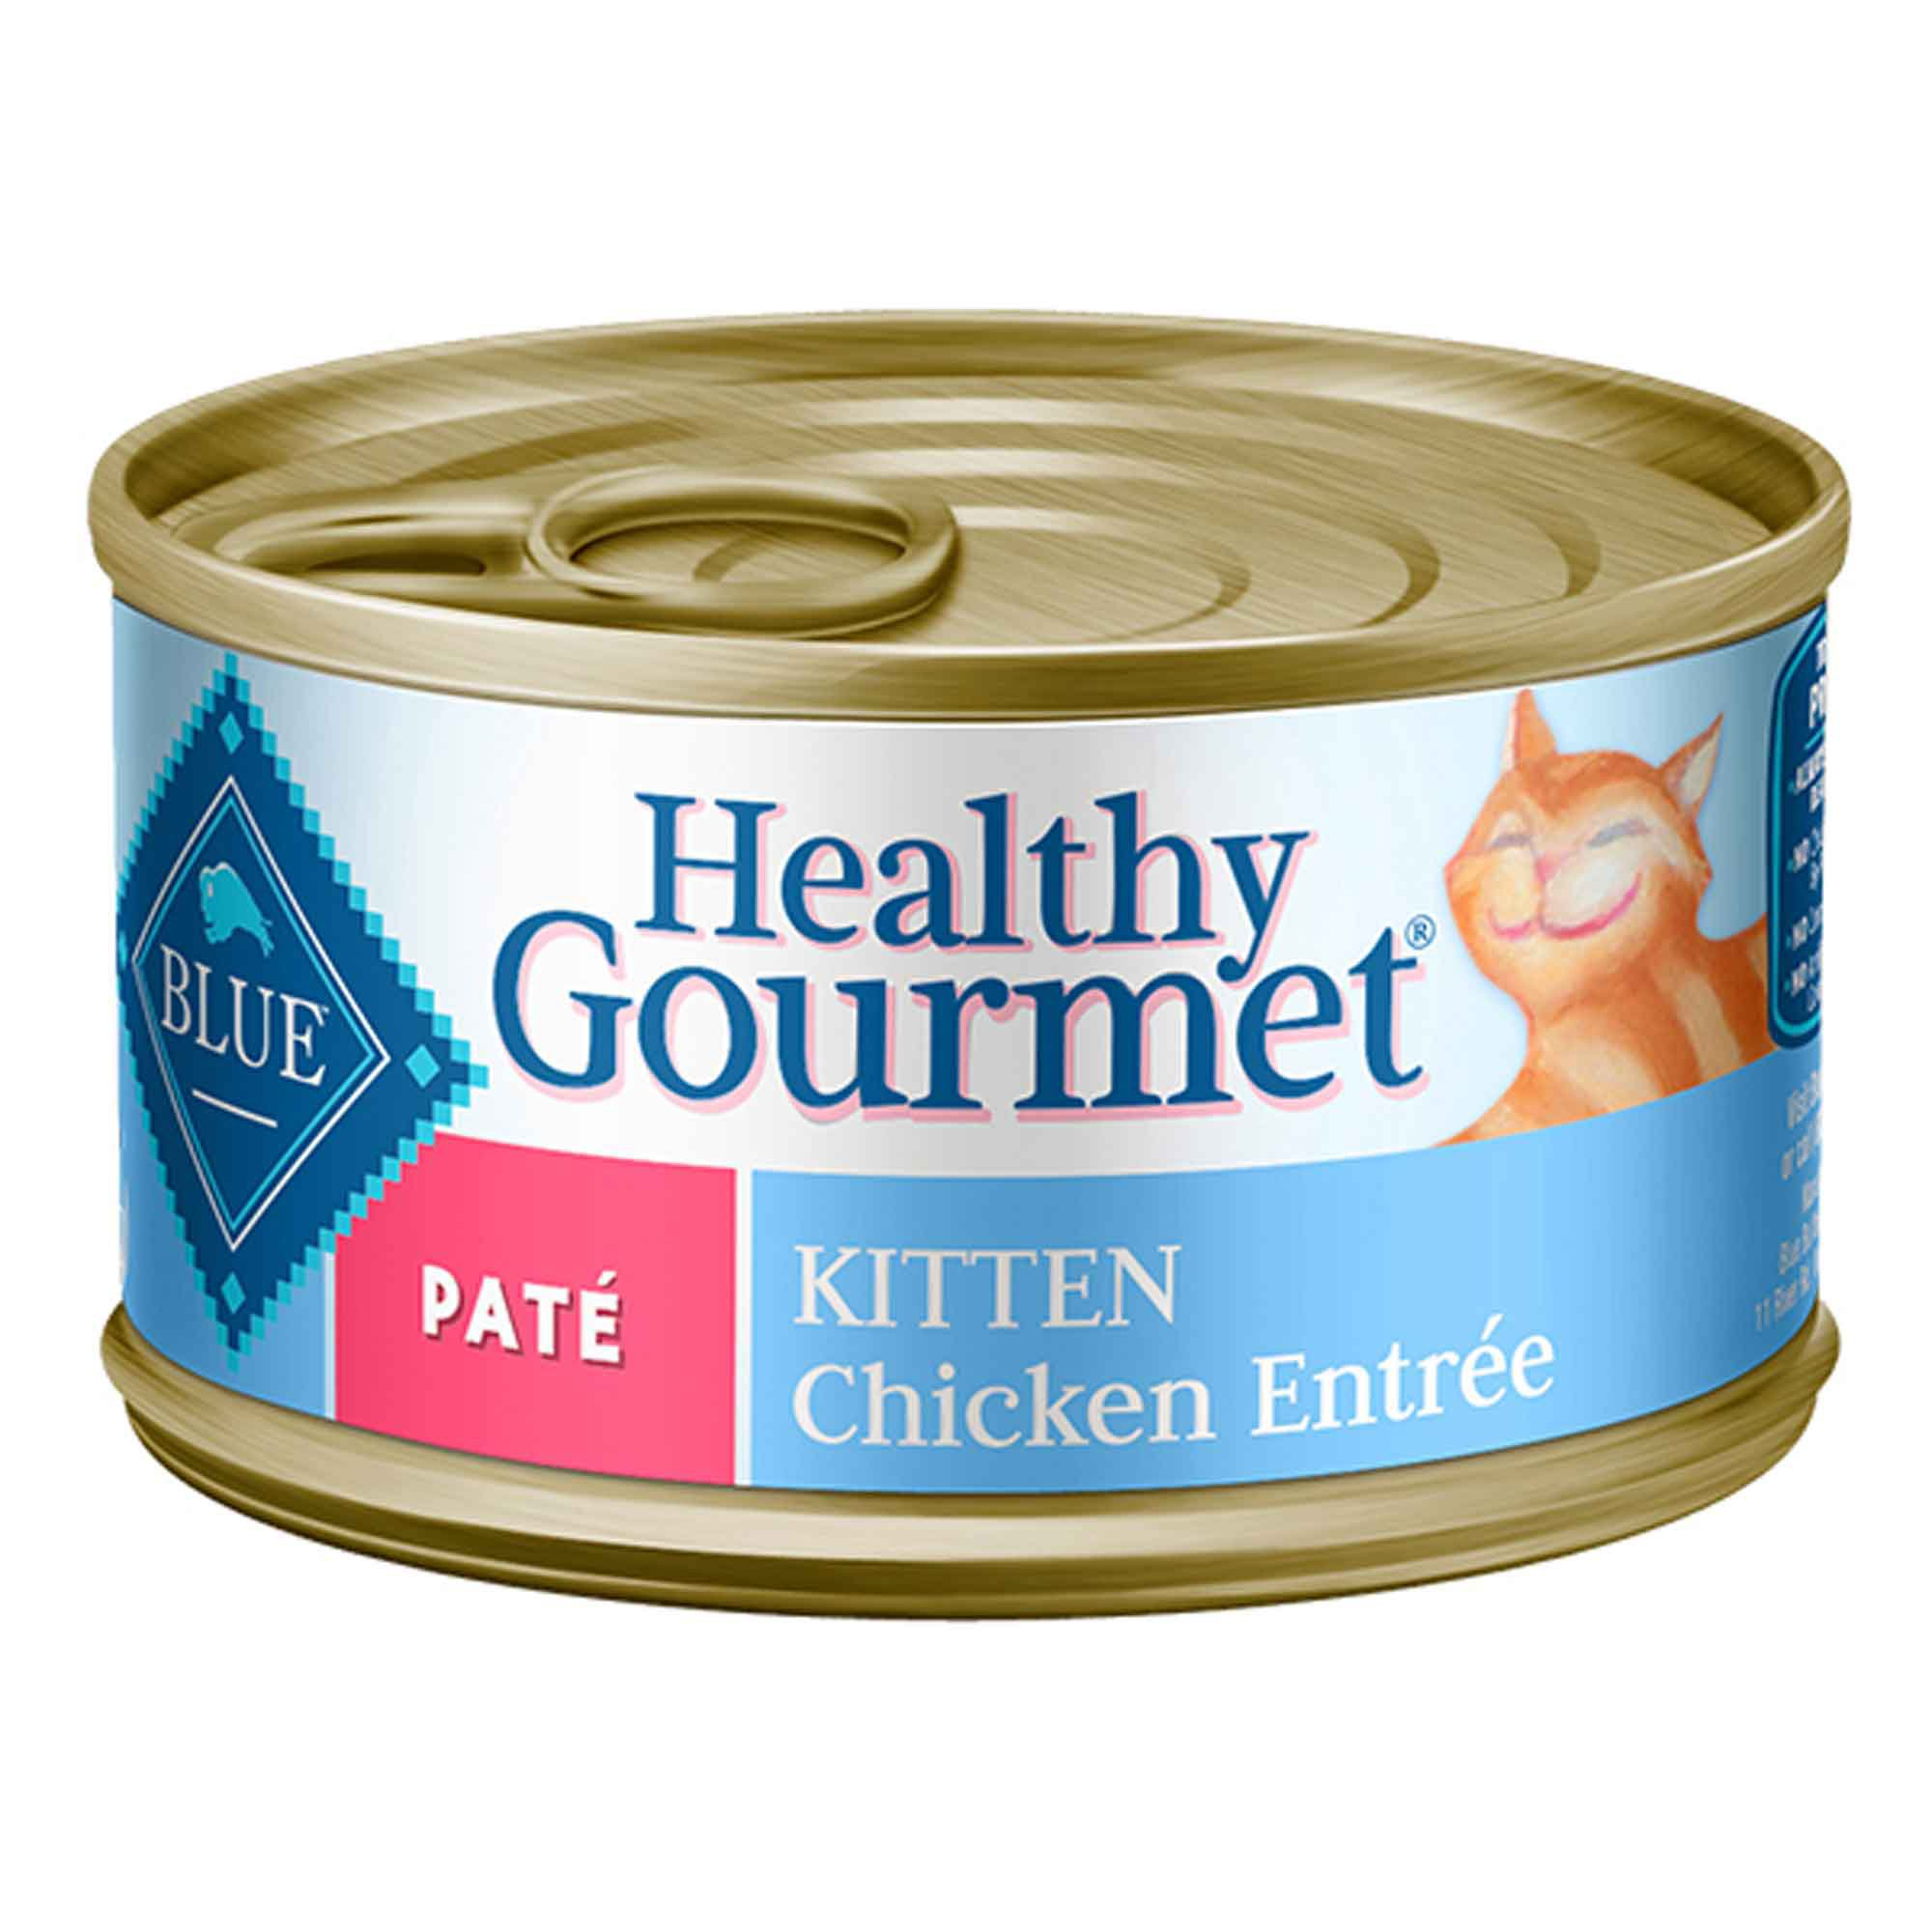 Blue Buffalo Blue Healthy Gourmet Kitten Chicken Entree